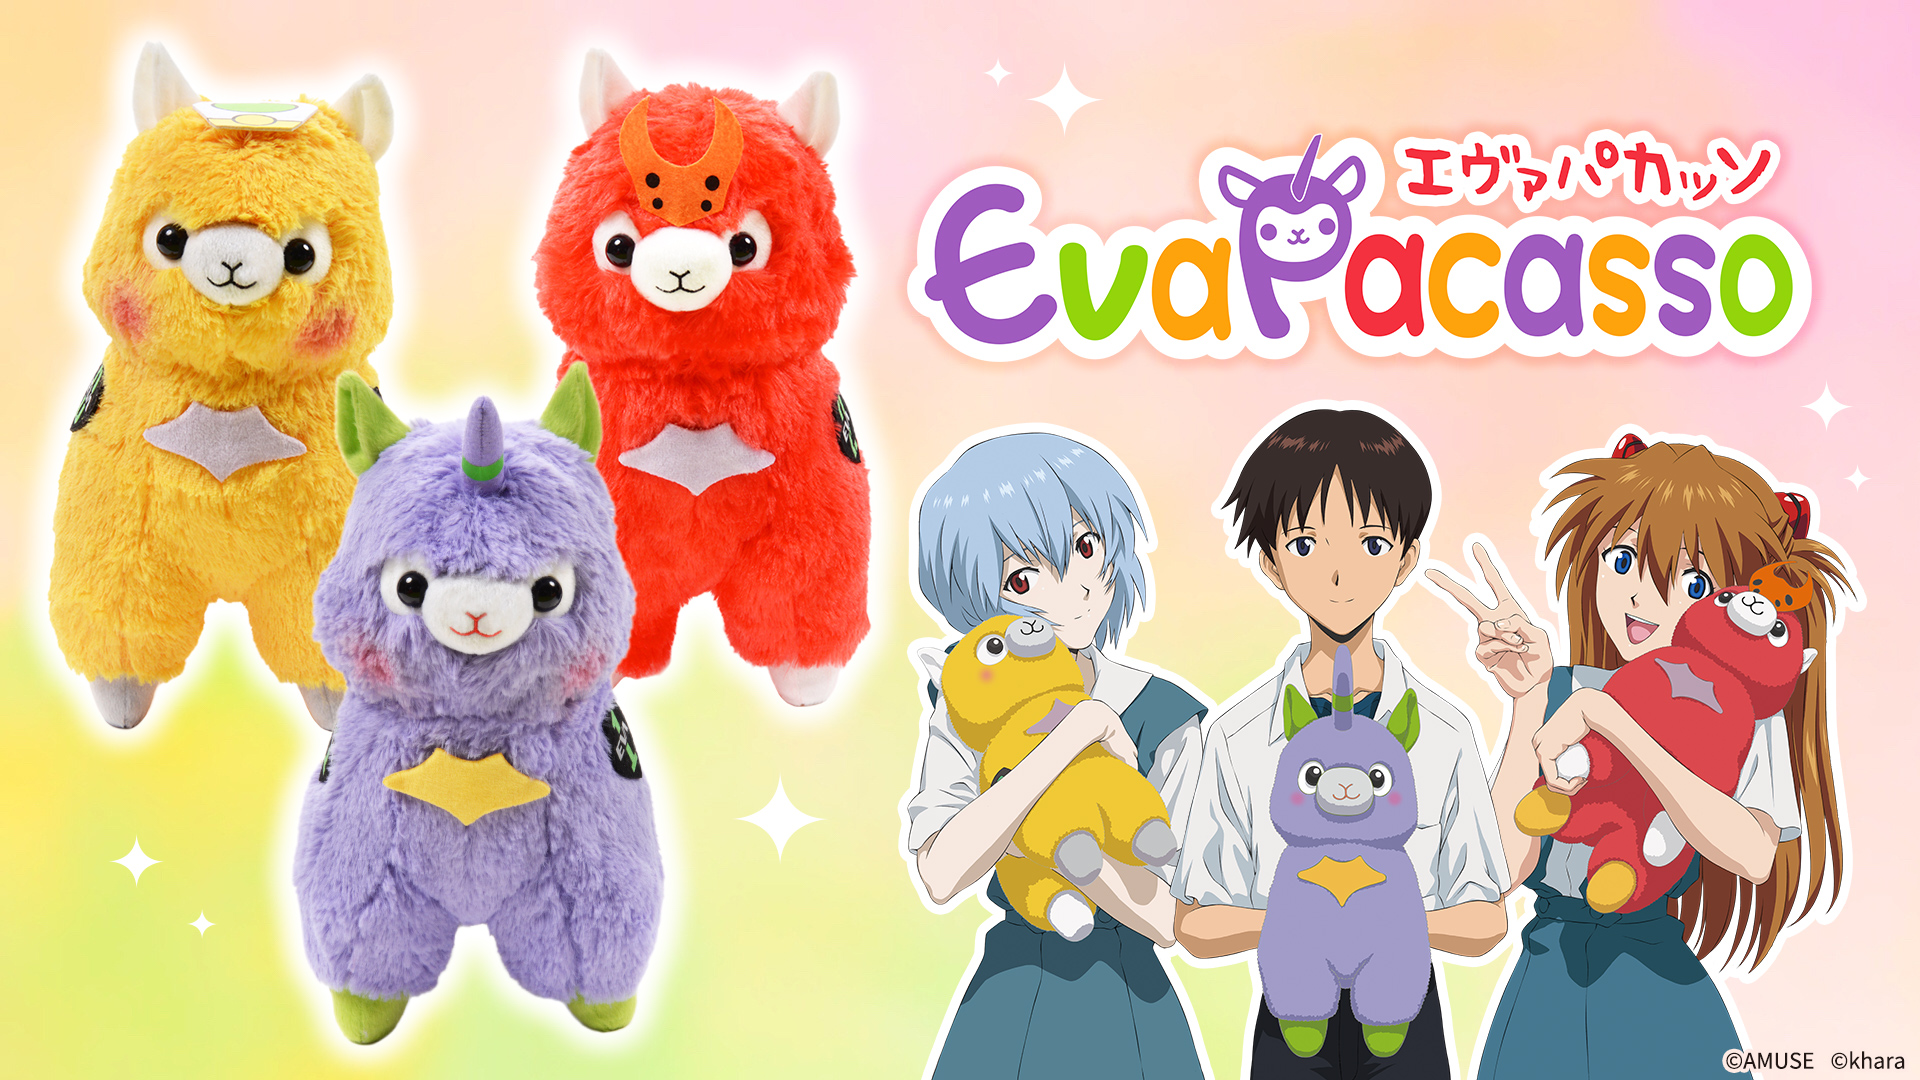 Alpacasso The Popular Plush Toy is Collaborating with Evangelion 1920x1080